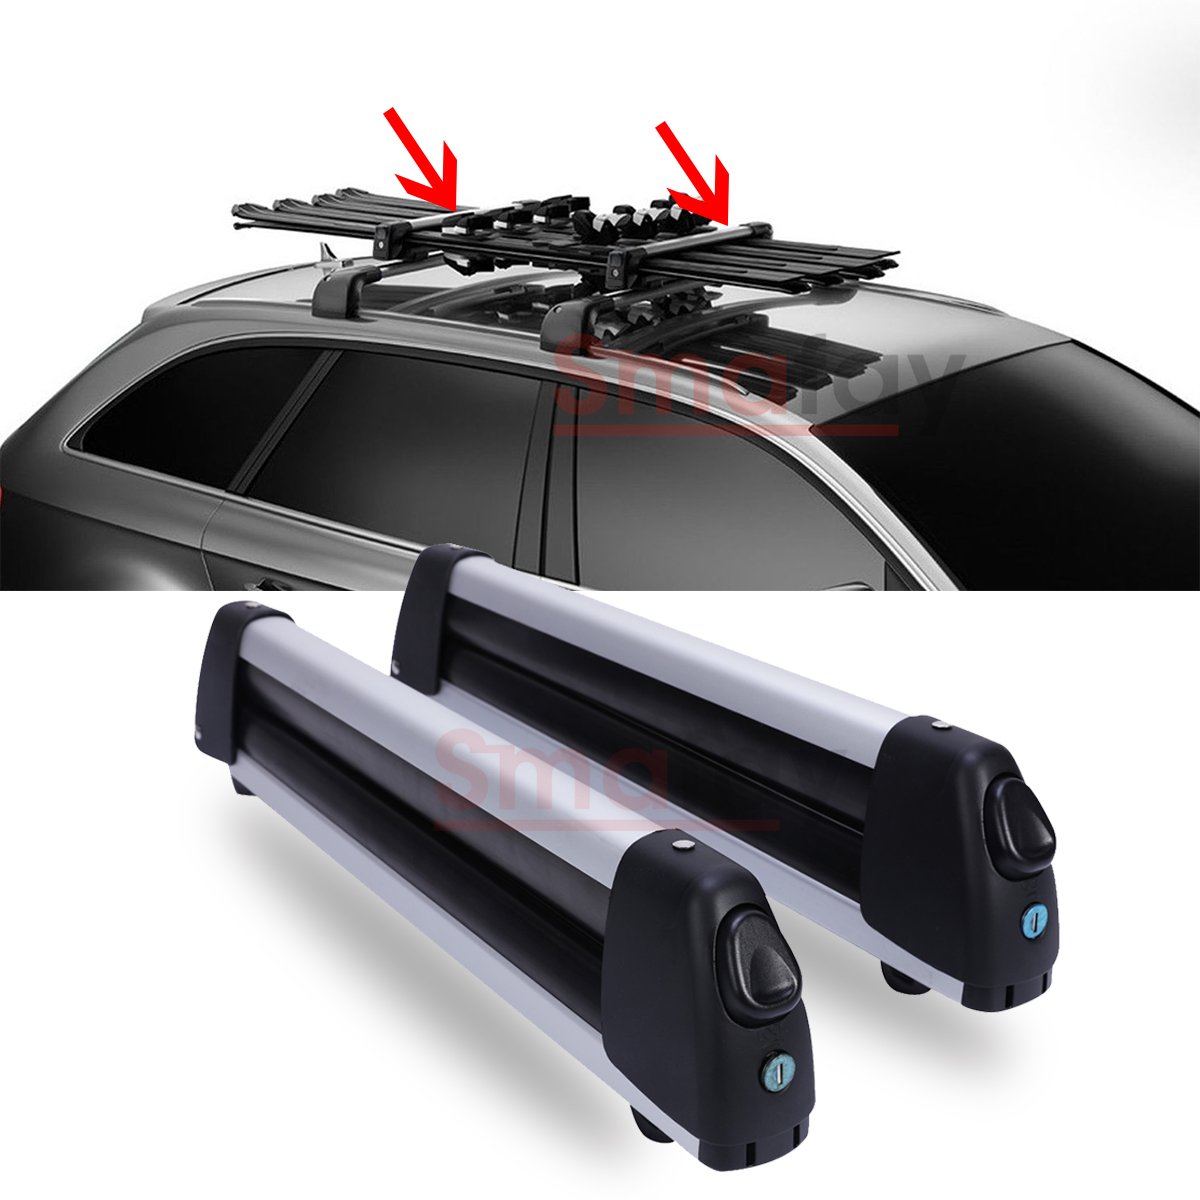 Ski Rack For Car >> Flat Car Top Roof Rack Ski Snowboard Carrier Mount For 4 Snowboard